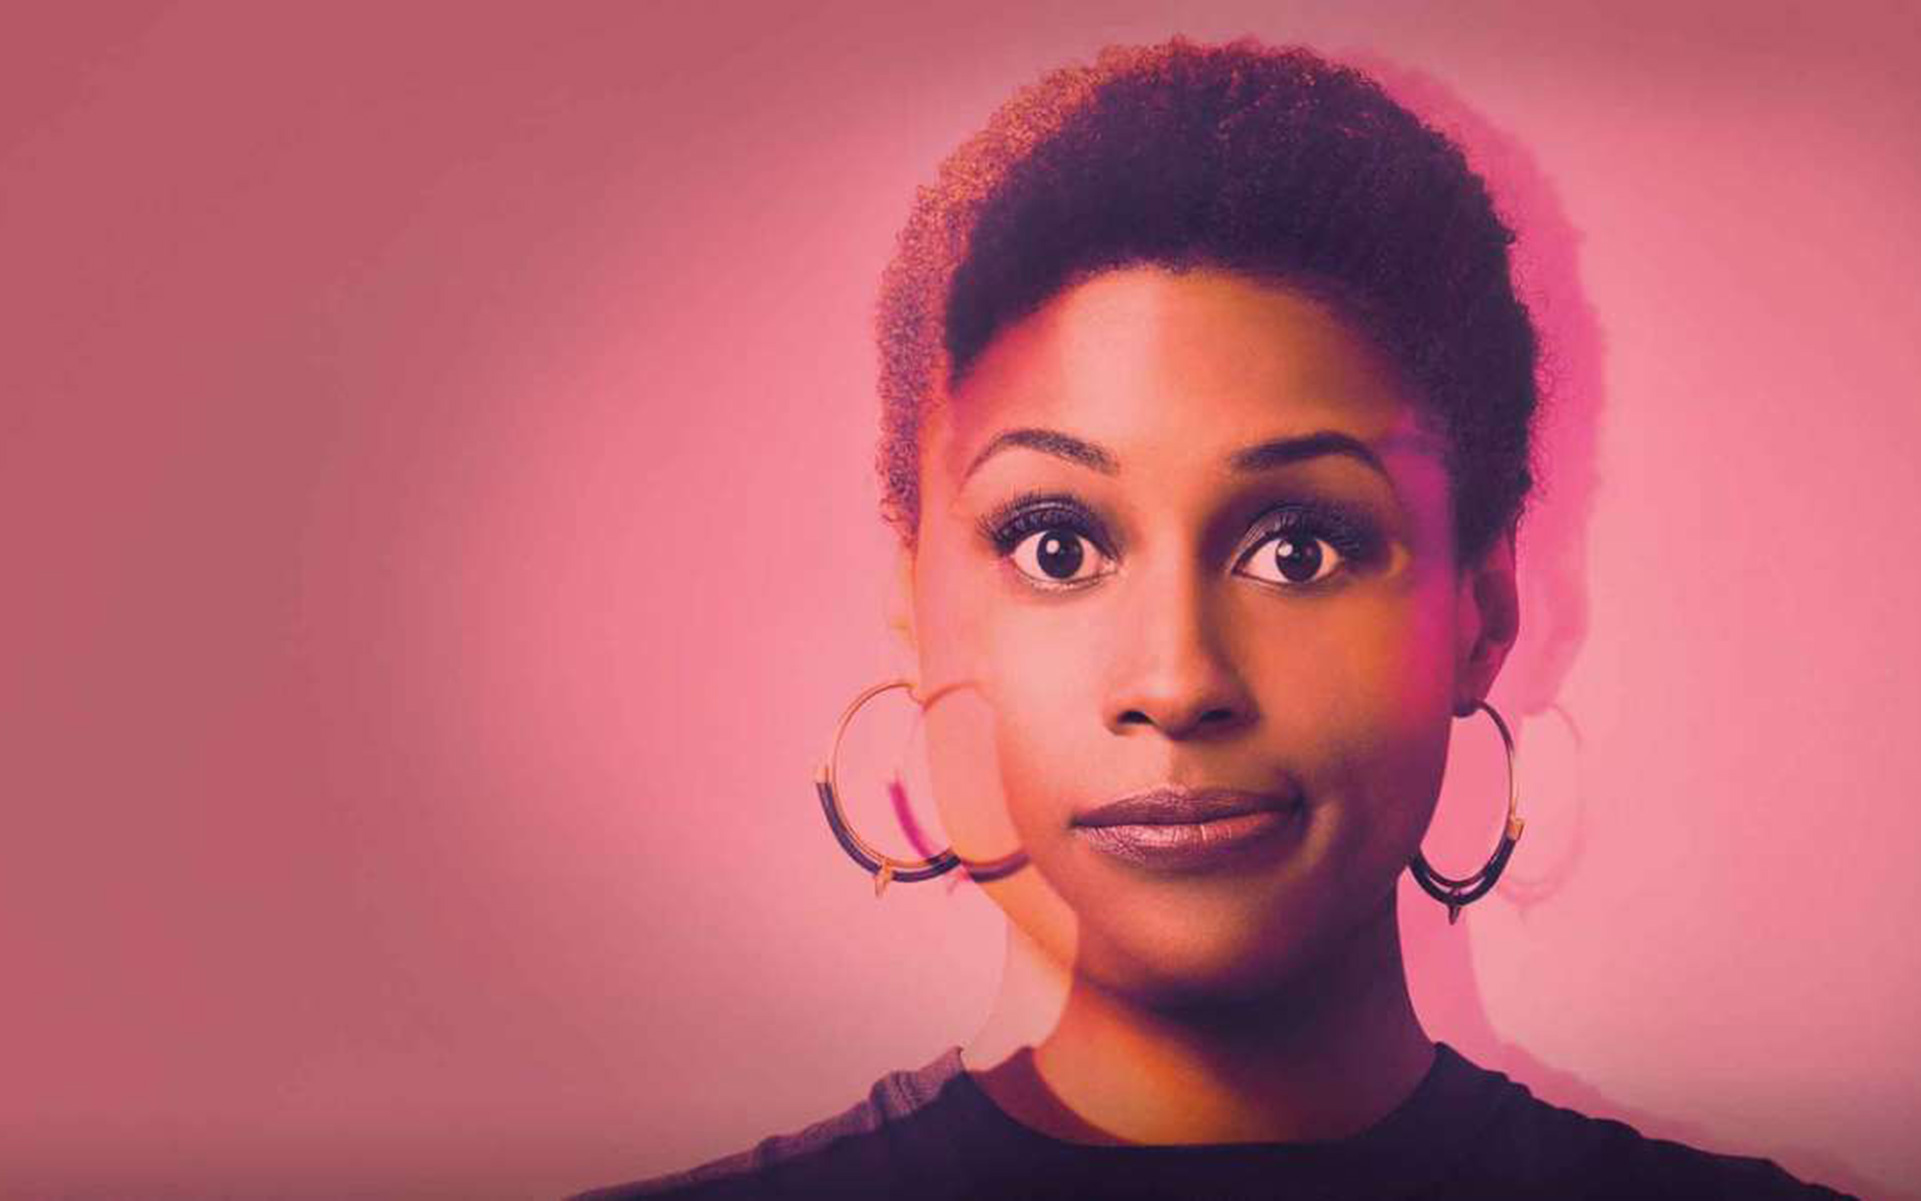 Feeling 'Insecure' Like Issa Rae? These Strains Can Help